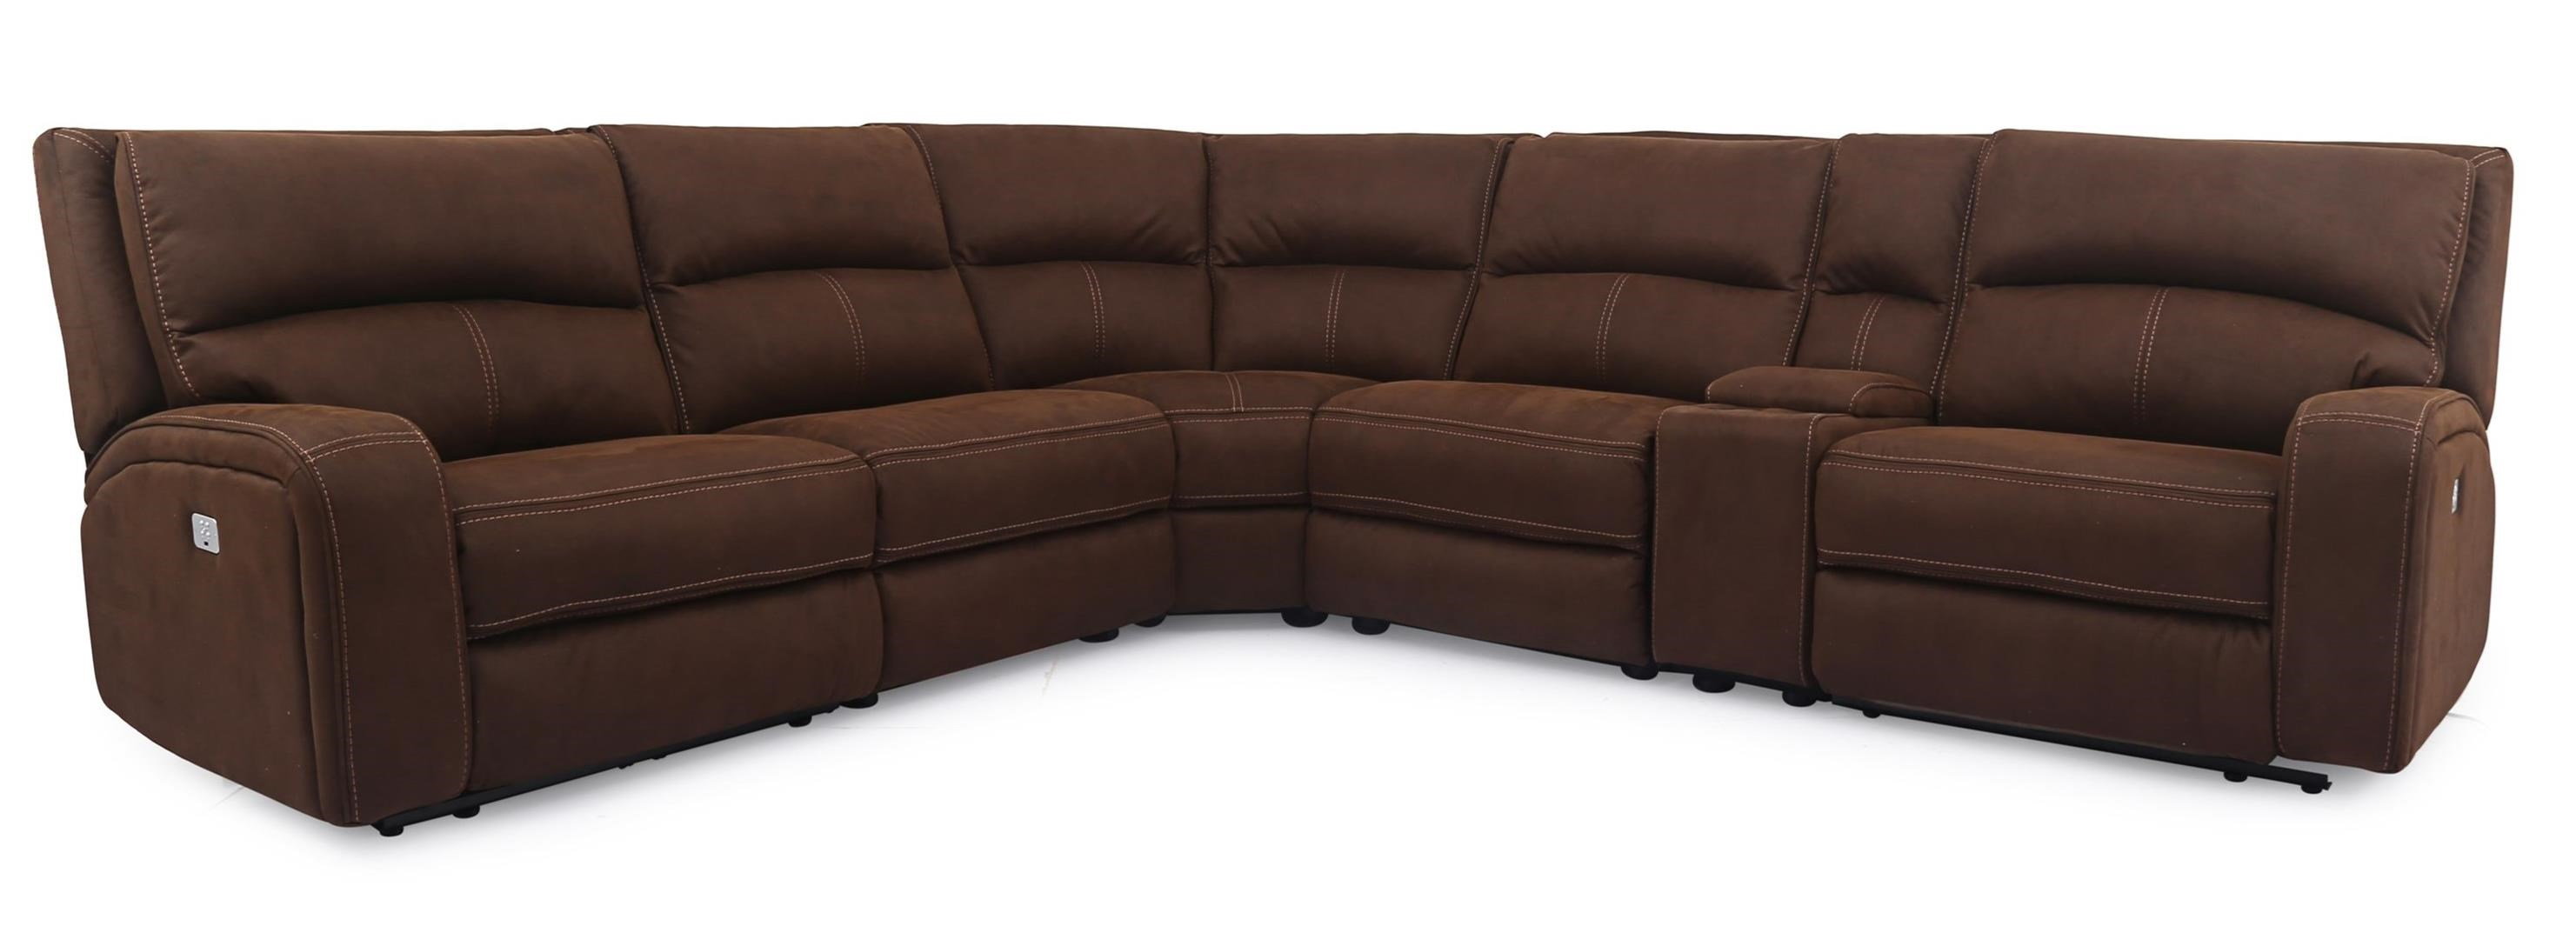 Cheers Sofa 5168HM Power Sectional - Item Number: 5168HM-AL15+D15+C+D15+HCE+AR15 370